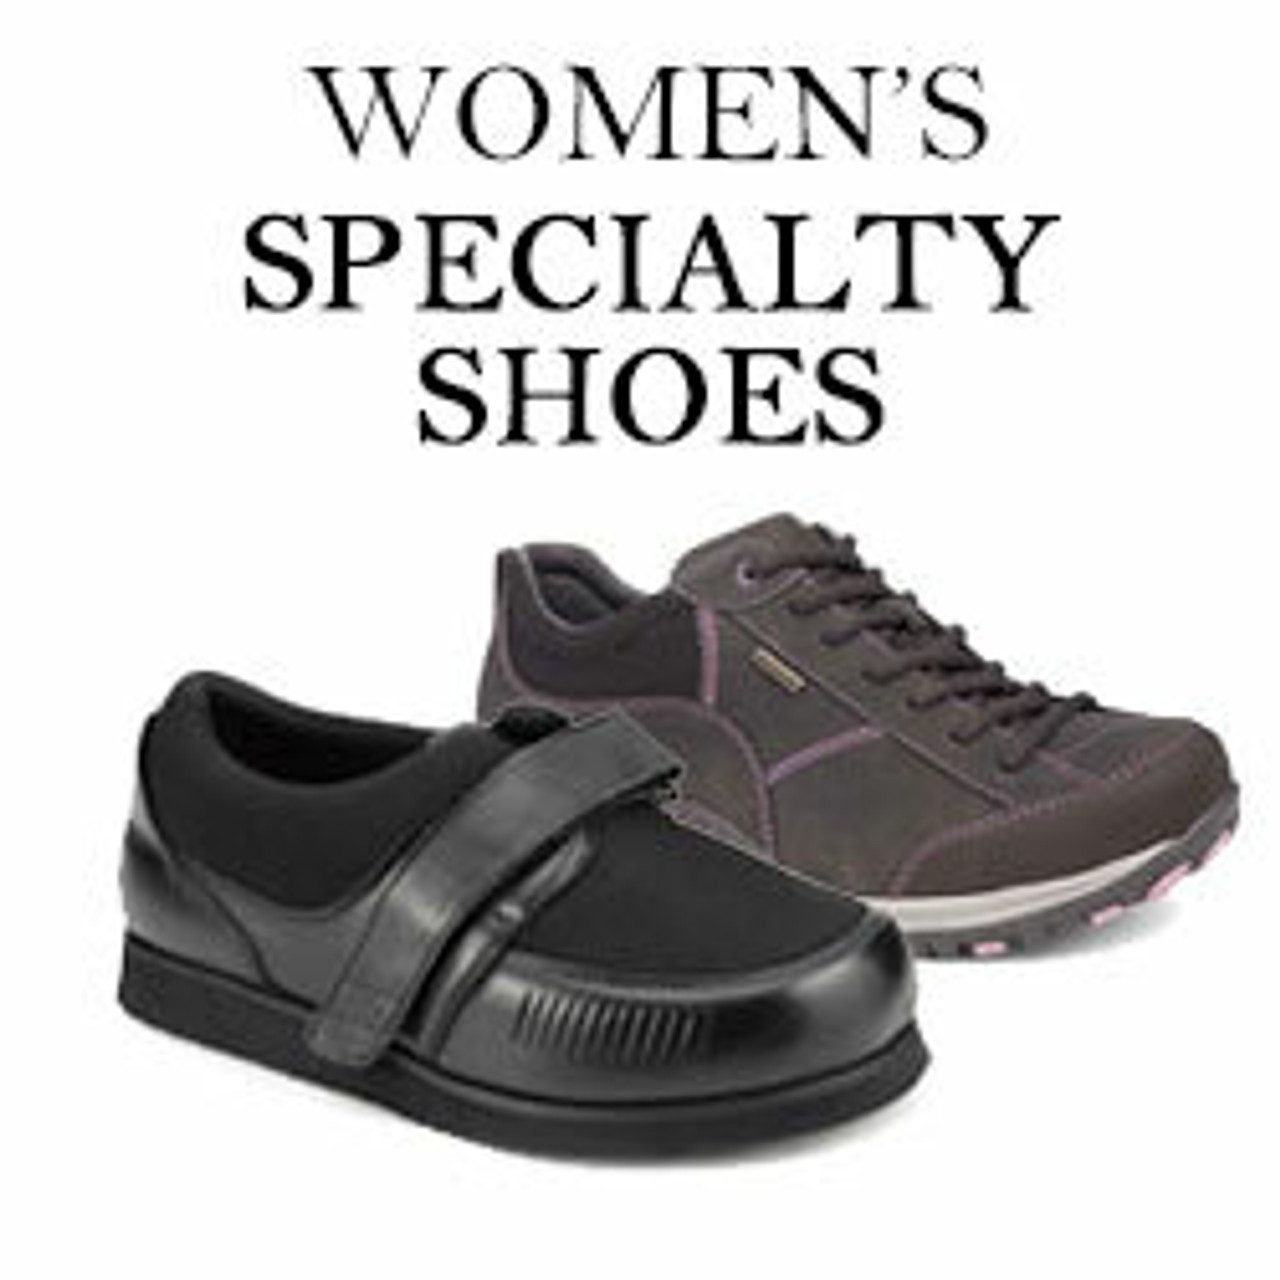 Women's Specialty Shoe Store   Specialty Shoes